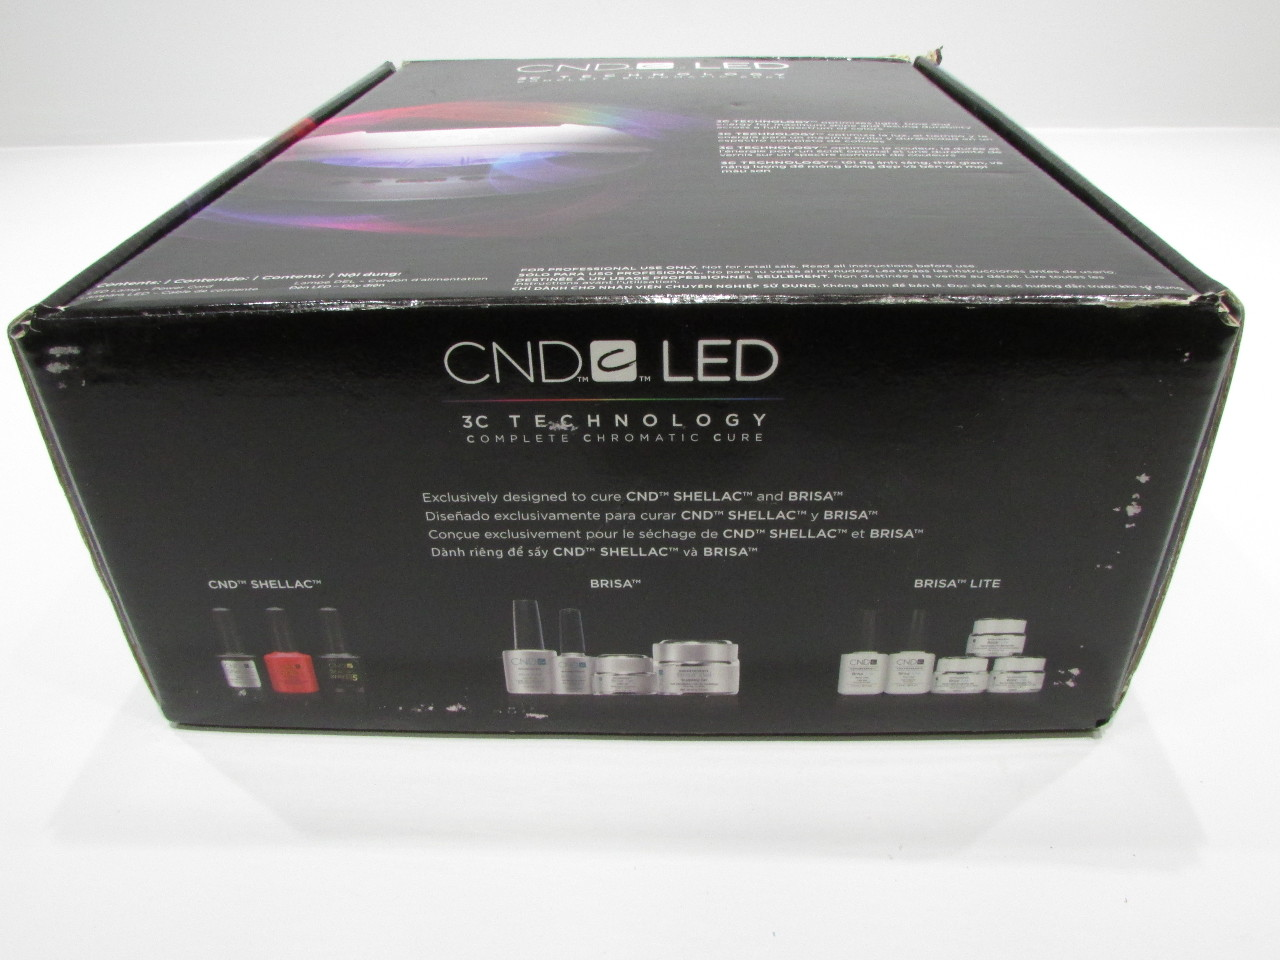 ... NEW CND LED LAMP 3C TECHNOLOGY COMPLETE CHROMATIC CURE ...